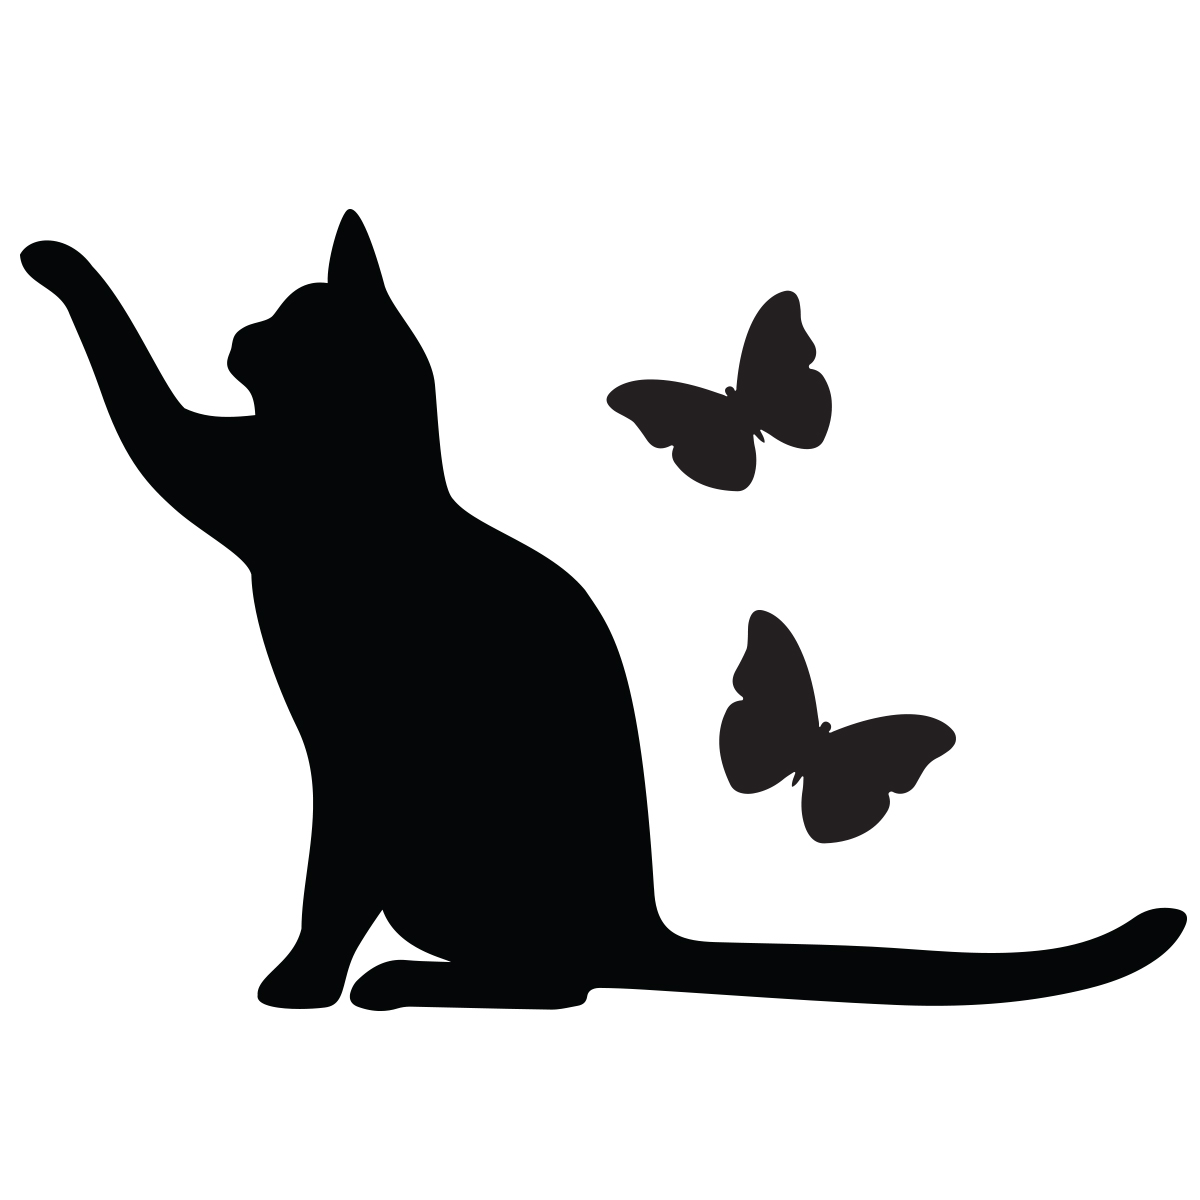 Sticker interrupteur prise chat et papillons stickers animaux papillons ambiance sticker - Chat noir dessin ...